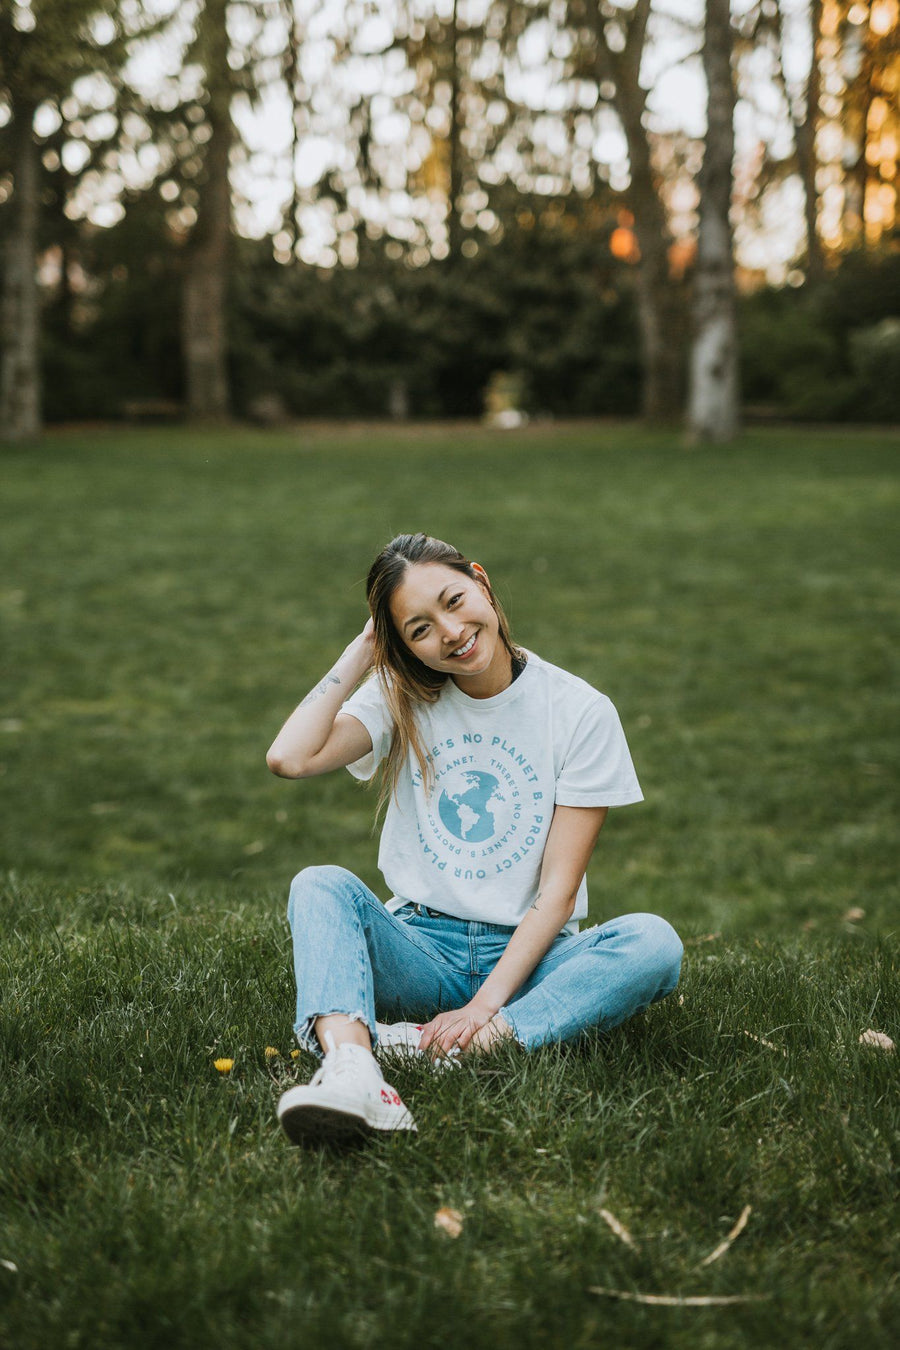 No Planet B Tee - Wondery, A Parks Apparel Brand